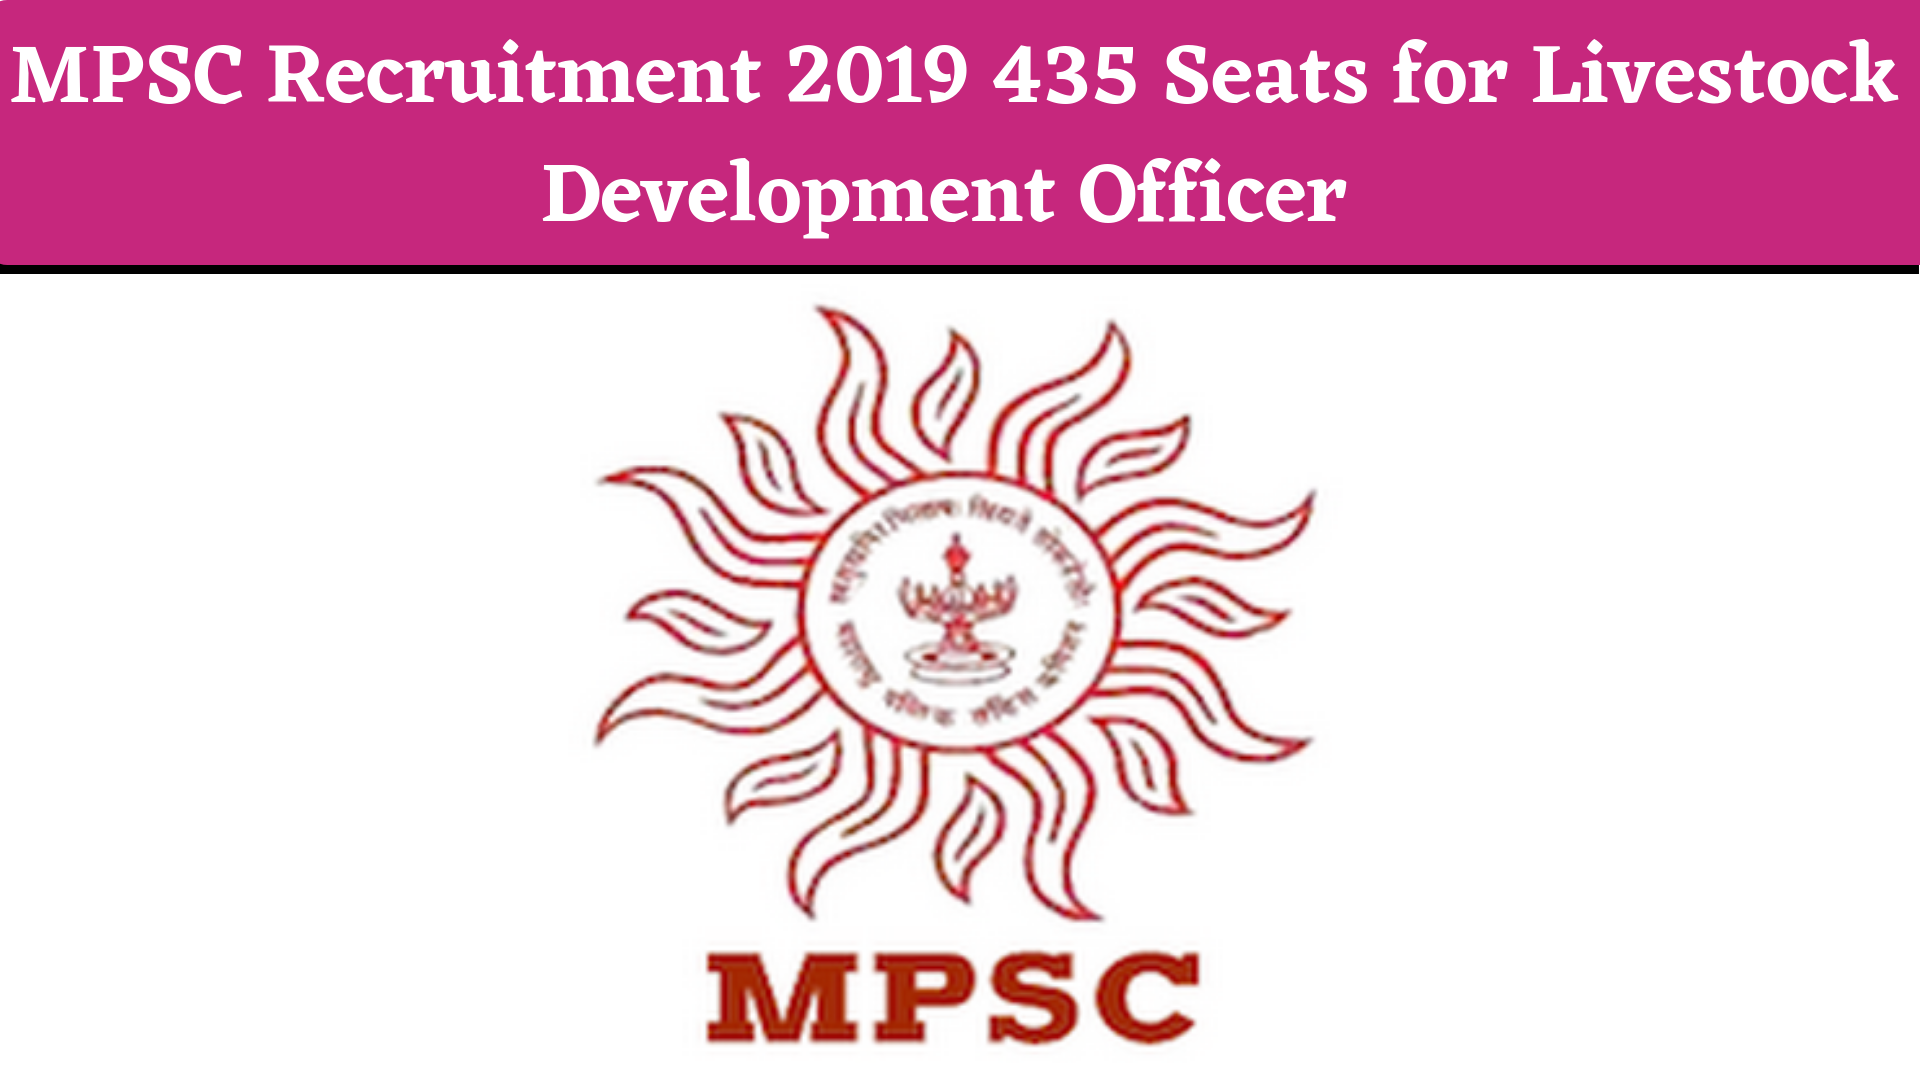 MPSC Recruitment 2019